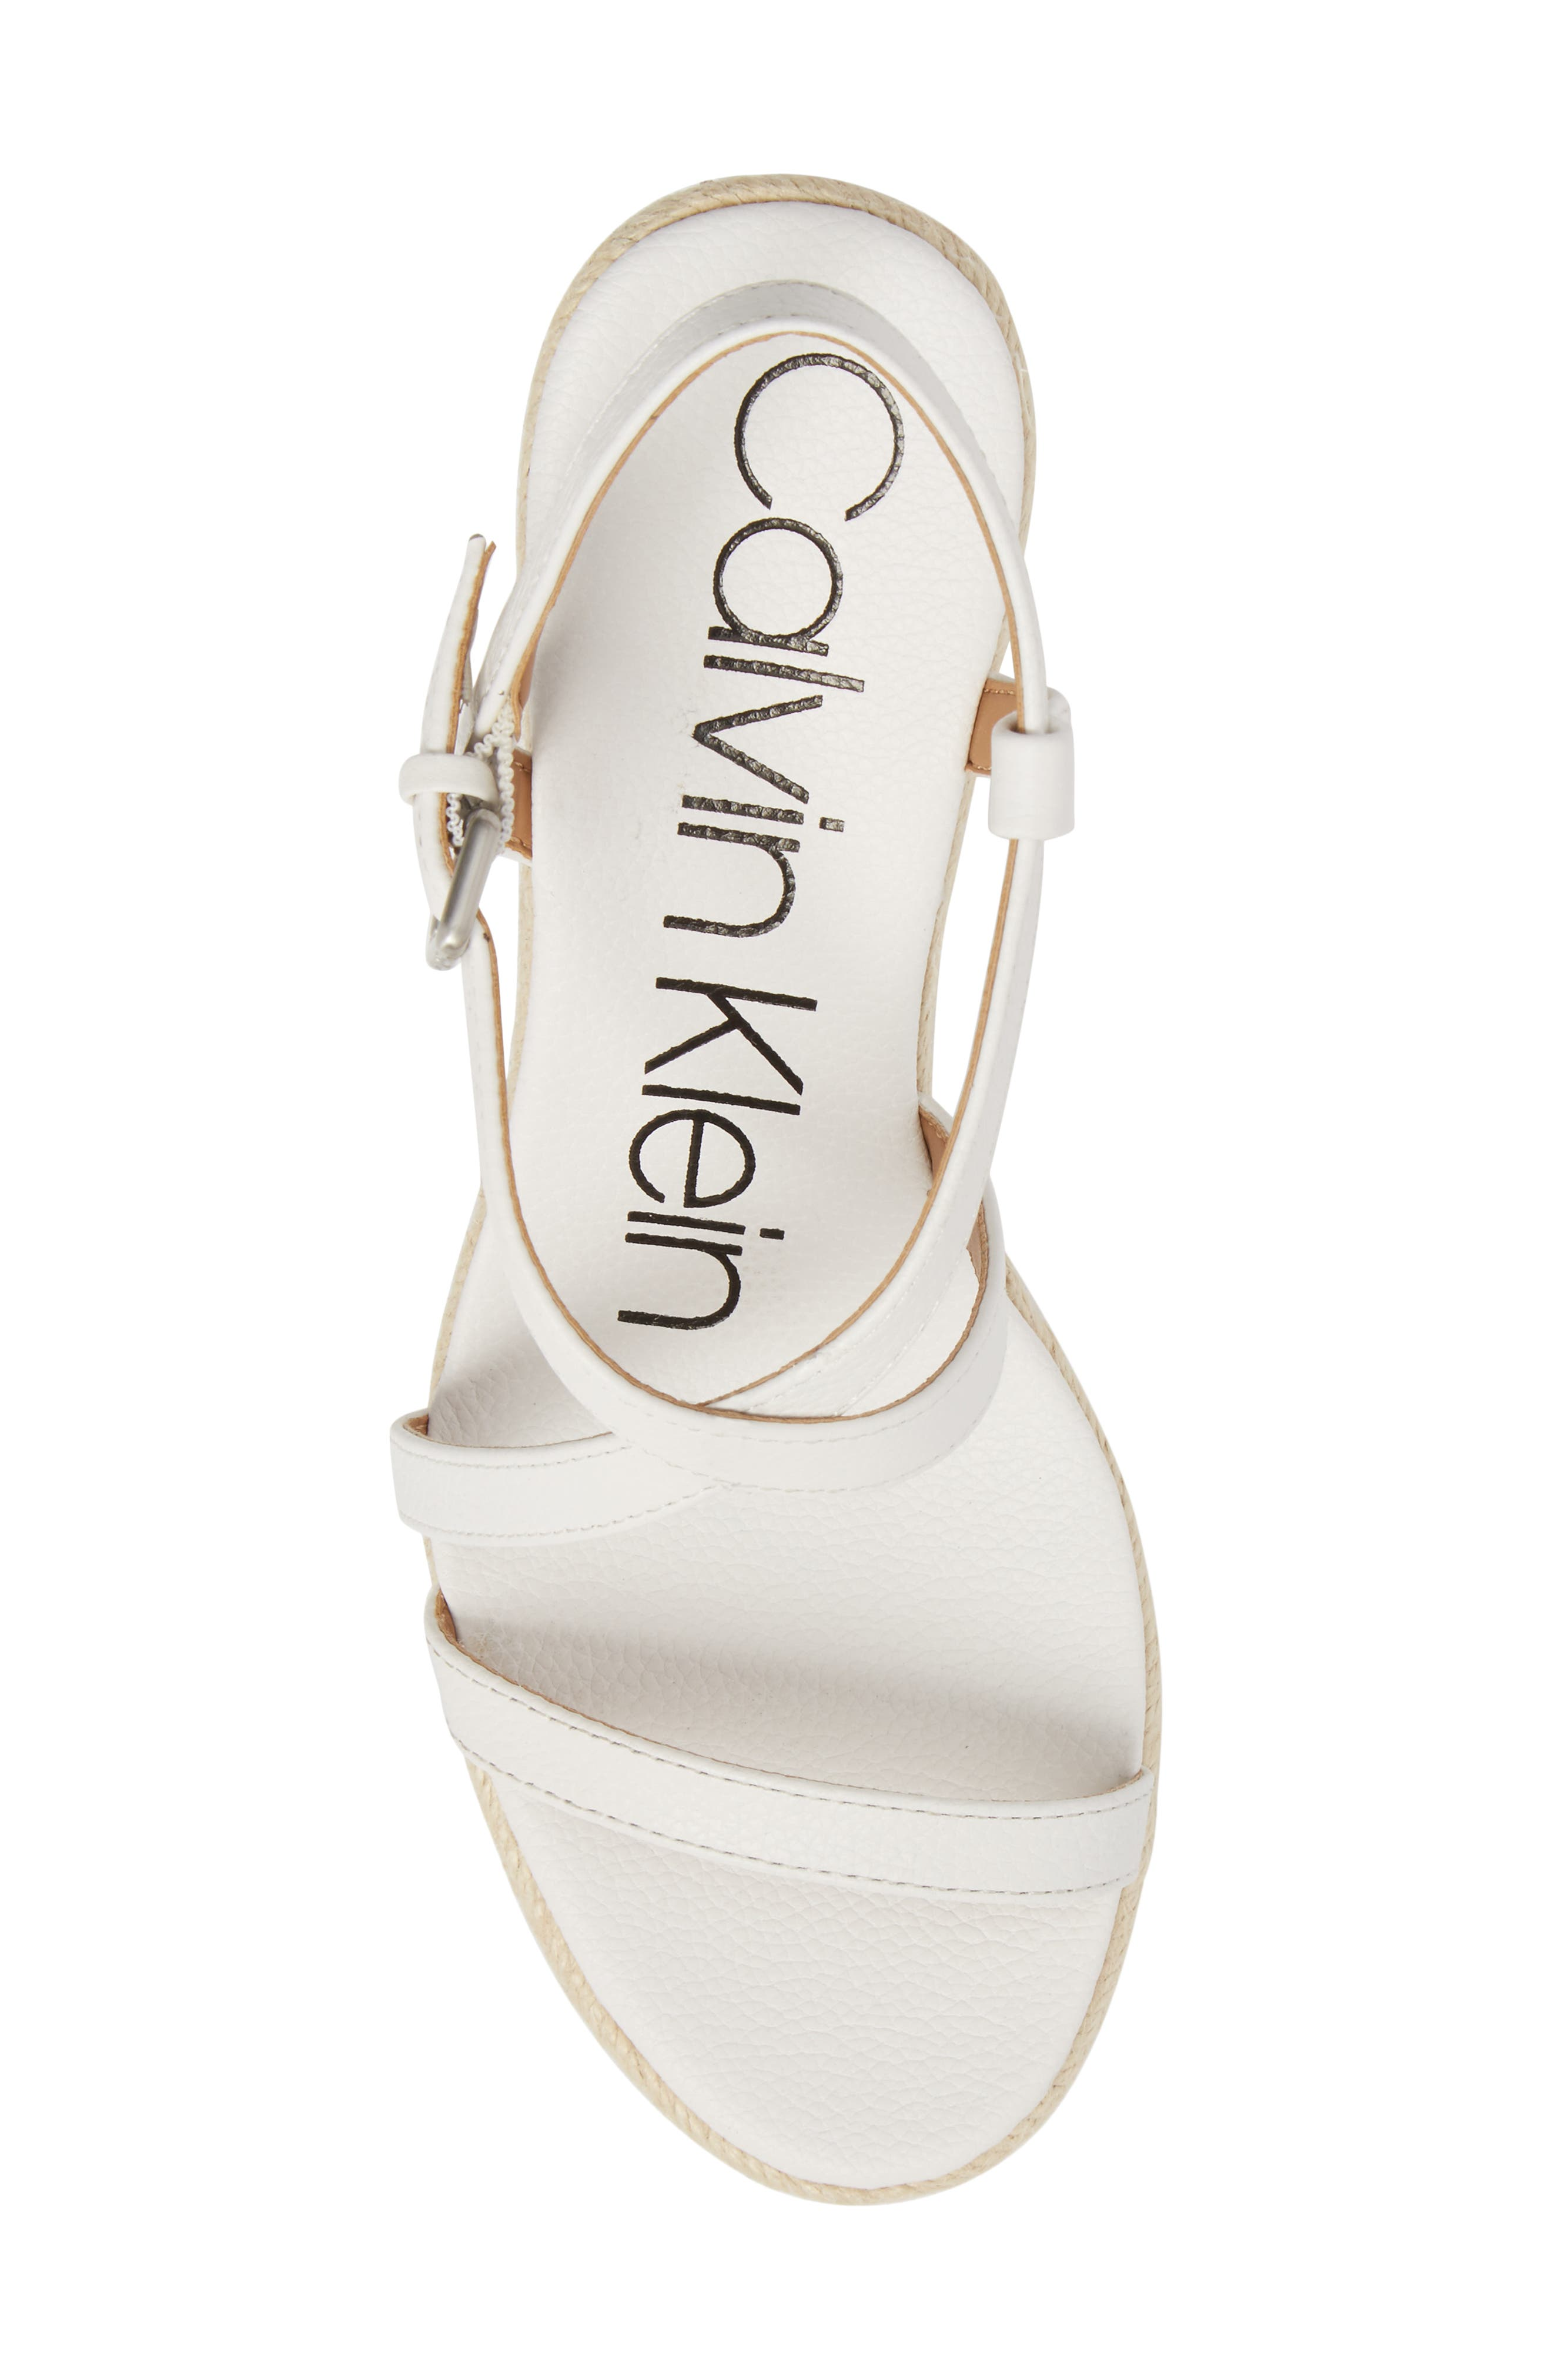 Bellemine Espadrille Wedge Sandal,                             Alternate thumbnail 5, color,                             PLATINUM WHITE PEBBLE LEATHER